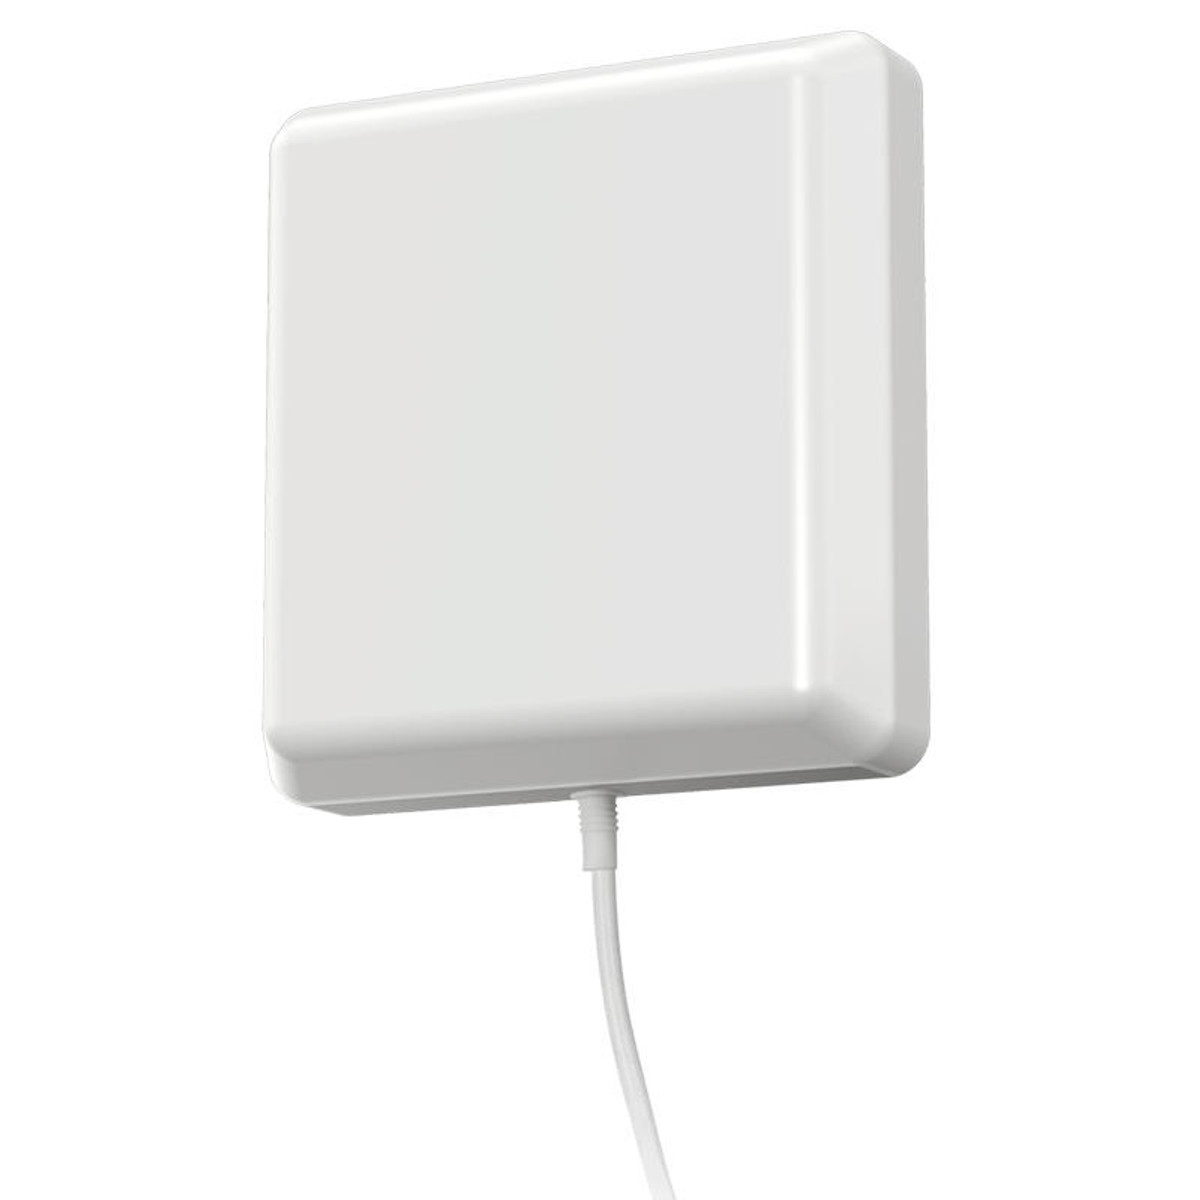 Wilson Electronics Wilson Indoor Wall Mount Panel Antenna, 50 Ohm, 617-2700 MHz or 311234